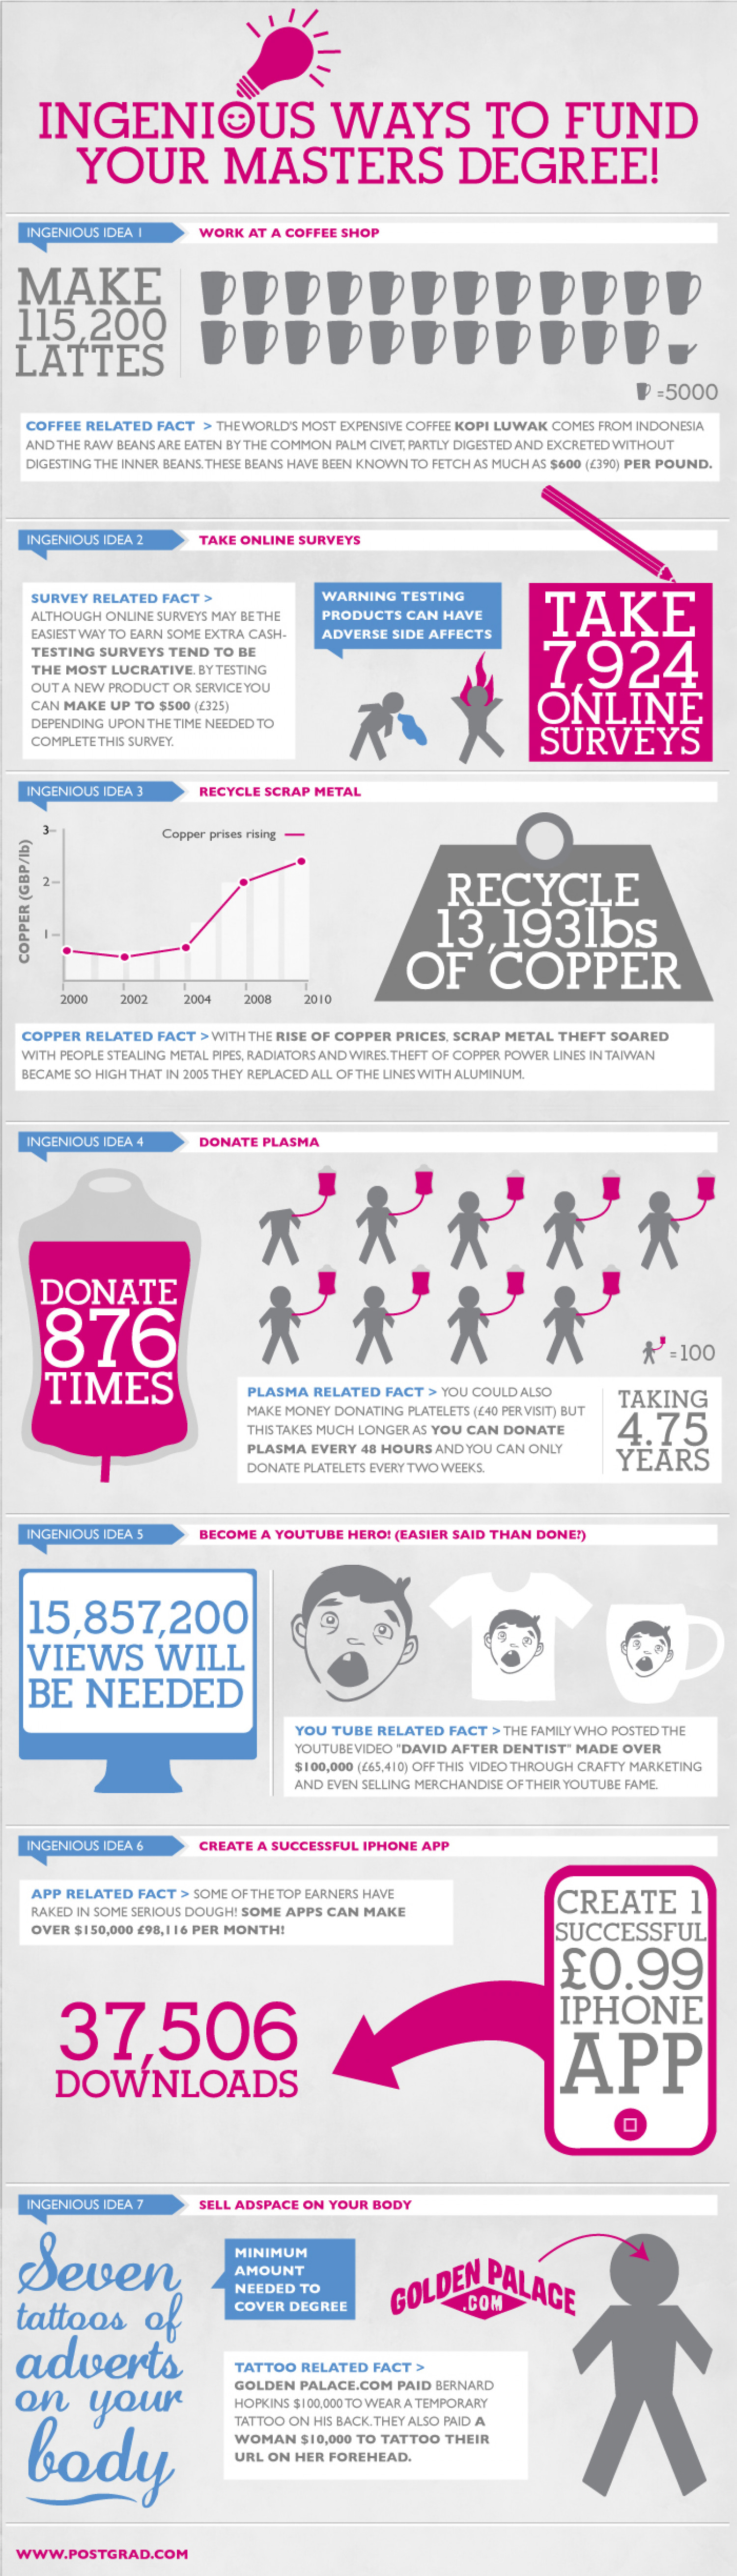 How Can I Afford a Masters Degree? Infographic